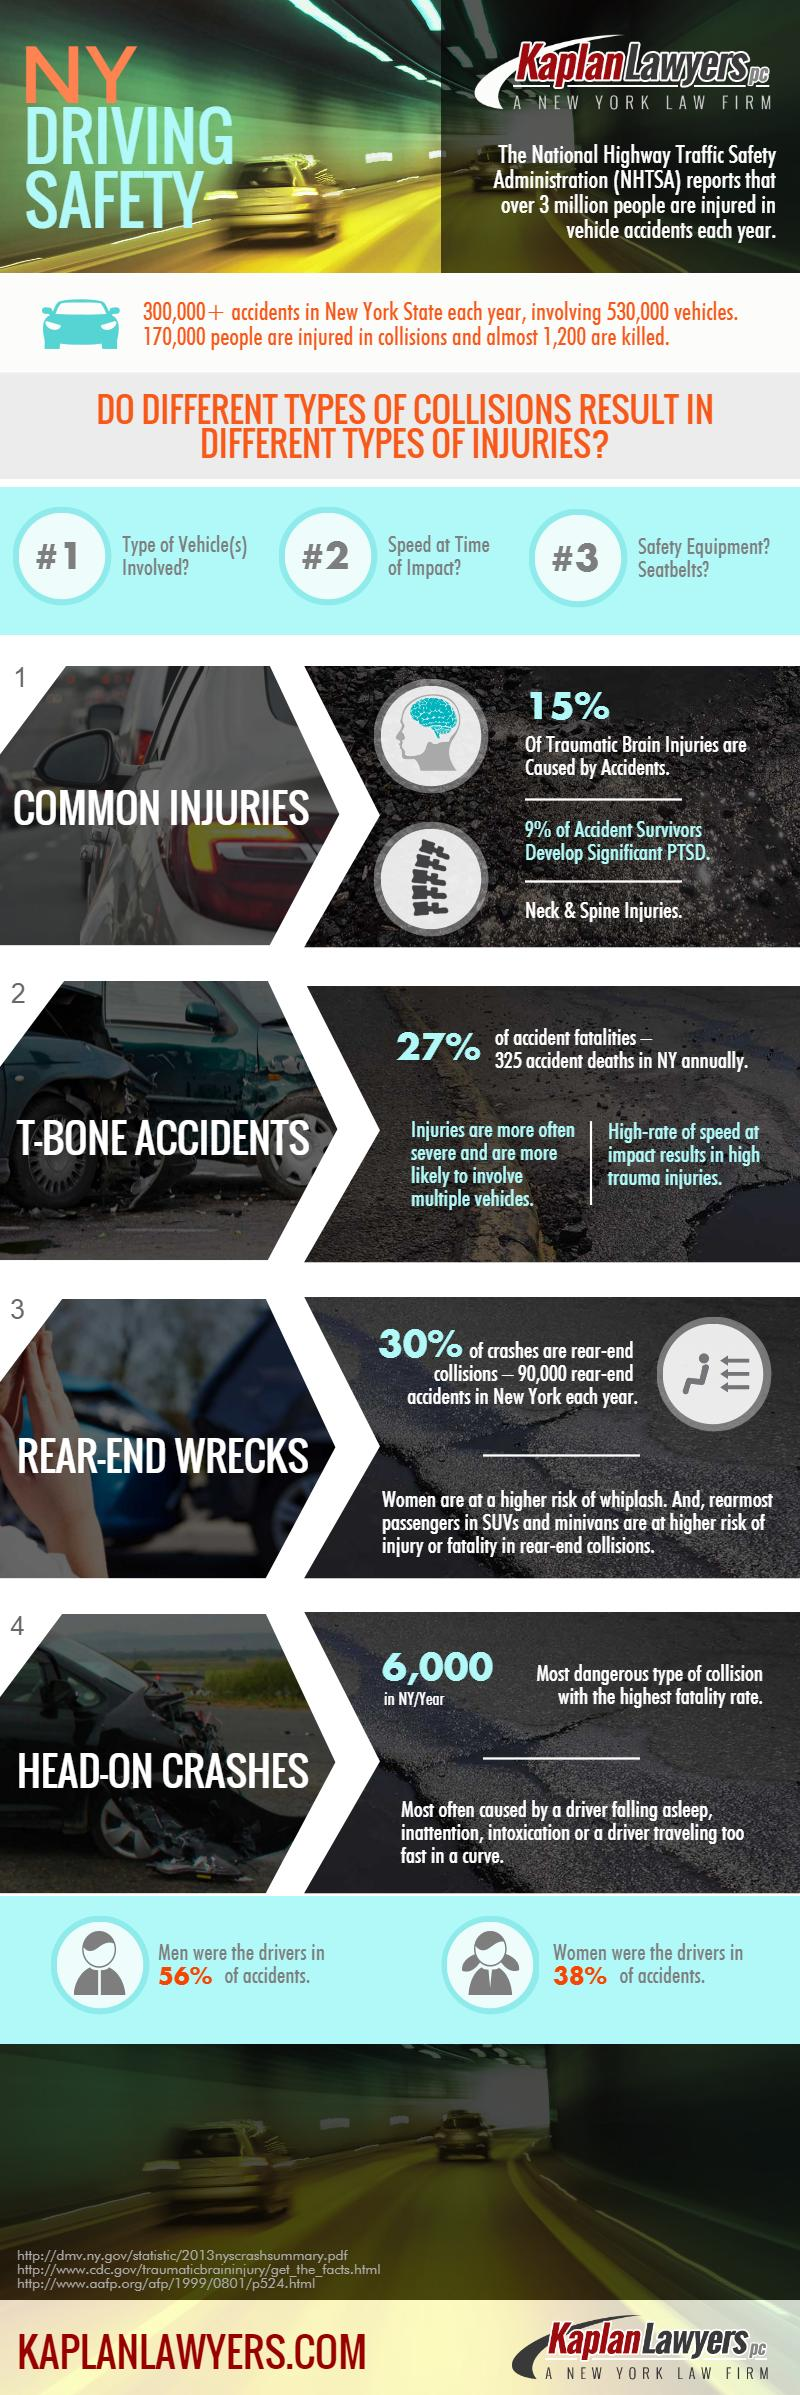 Kaplan driving injuries infographic